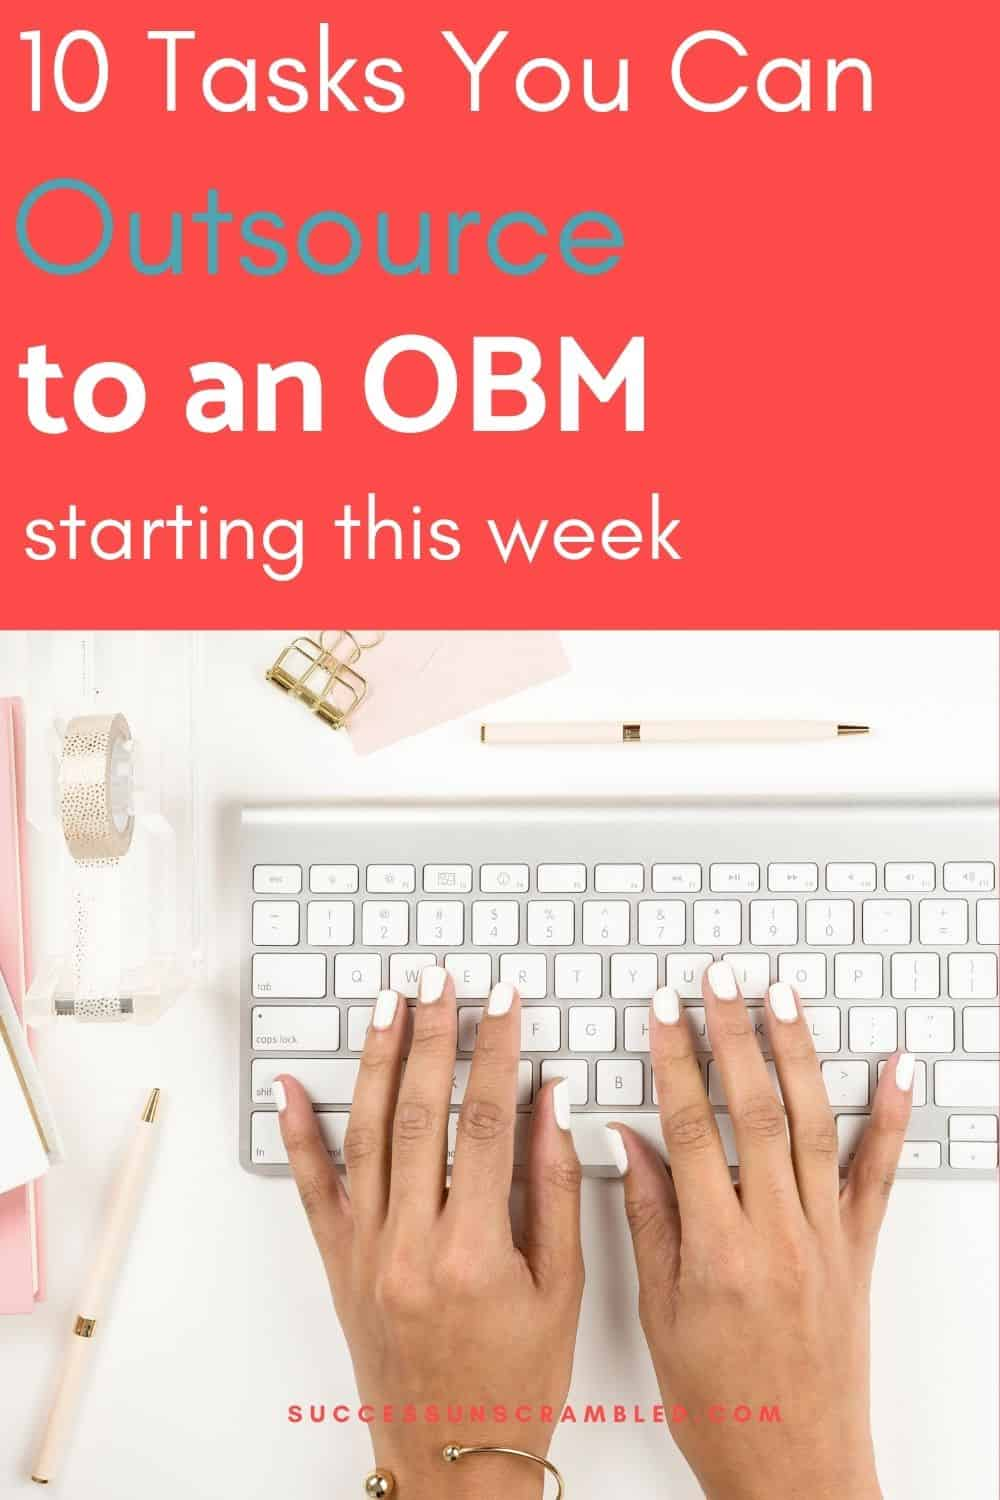 10 Tasks to Outsource to an OBM